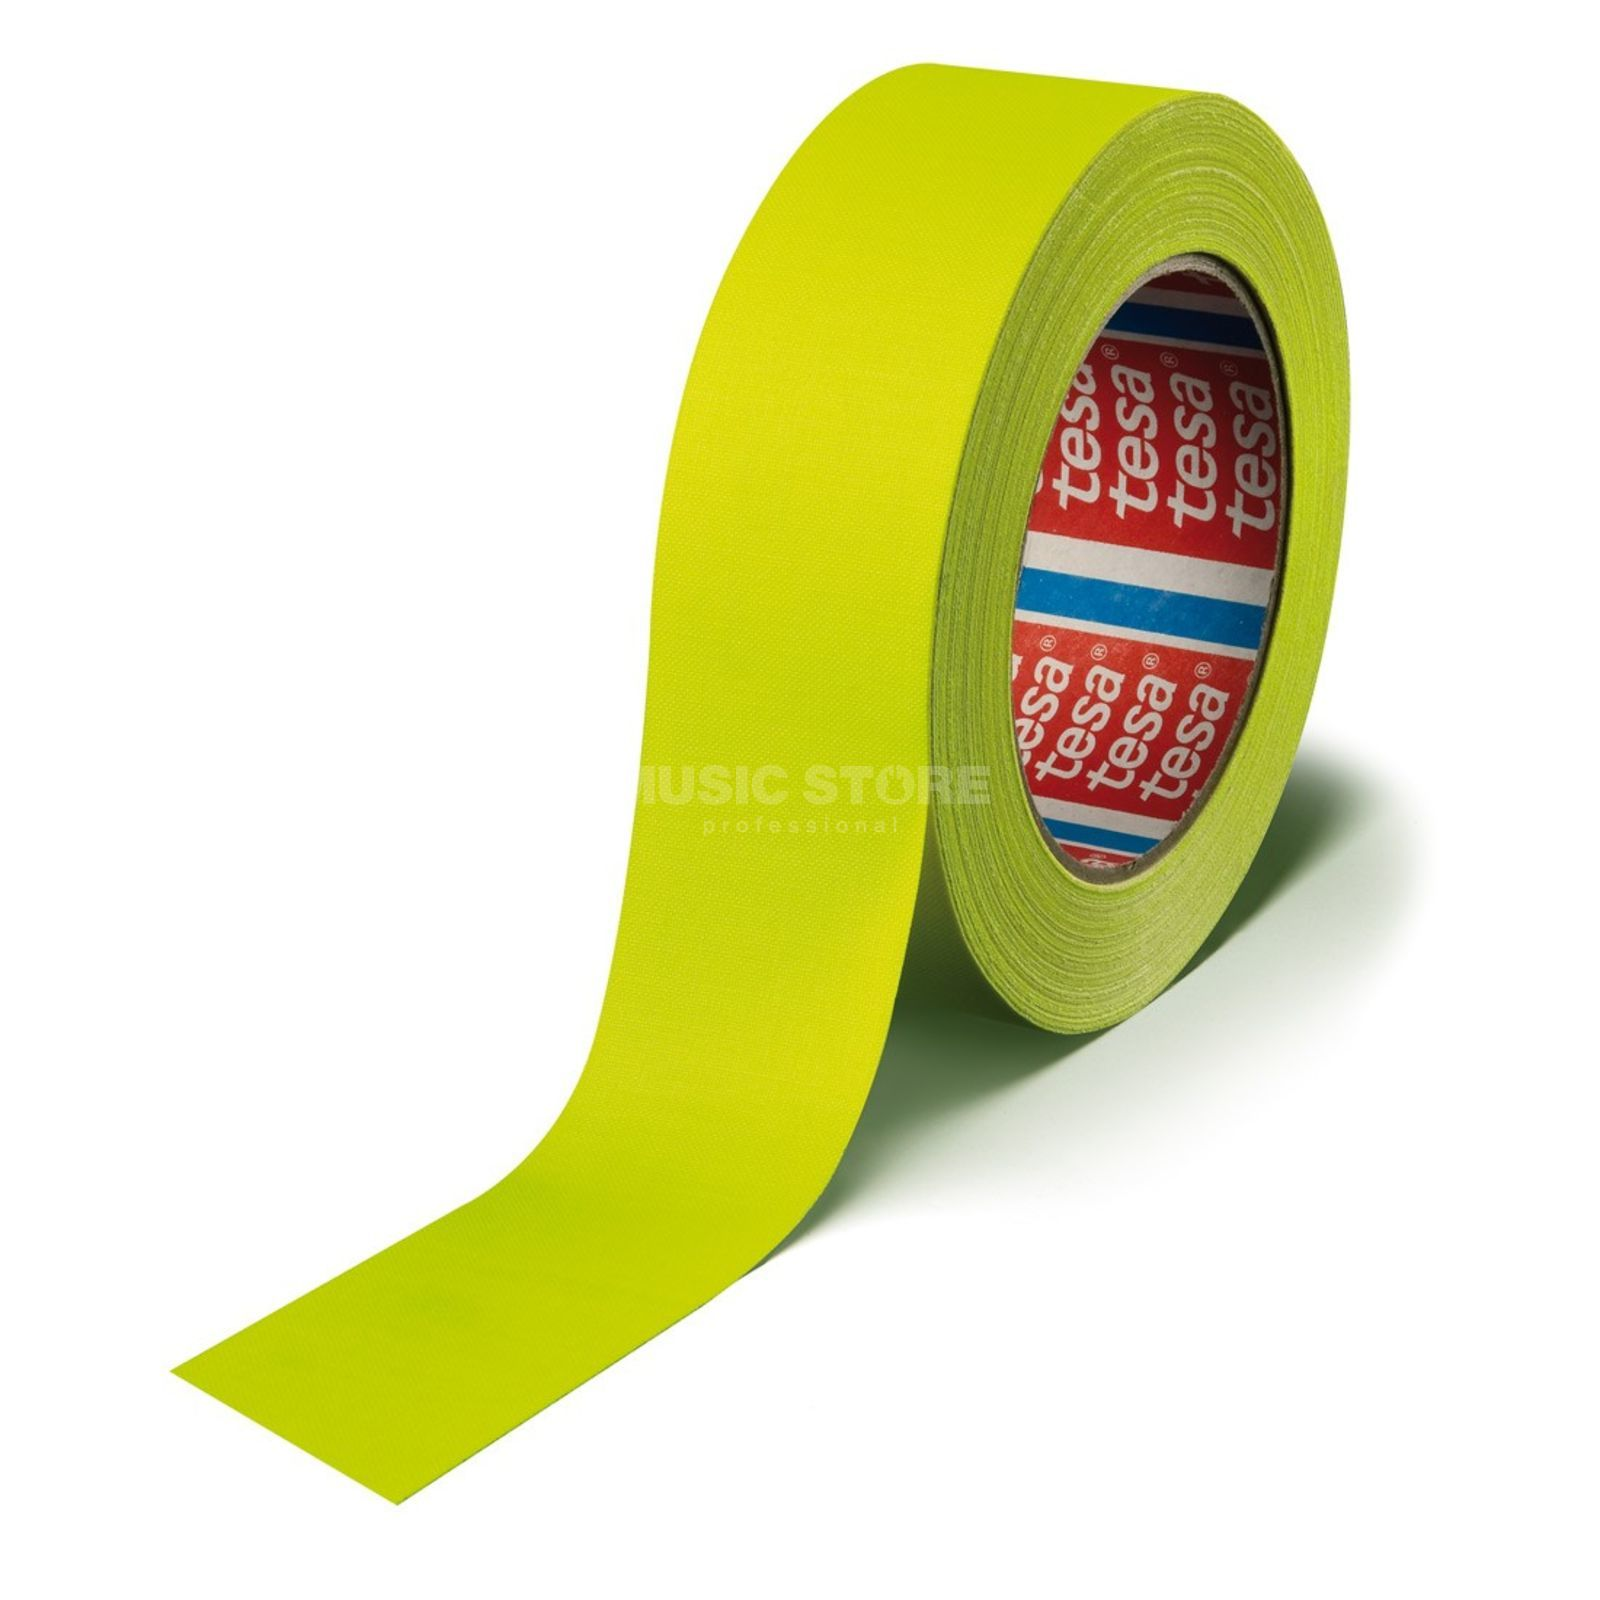 Tesa Highlight Gaffa Tape 4671 neongelb, 25m, 19 mm Produktbillede